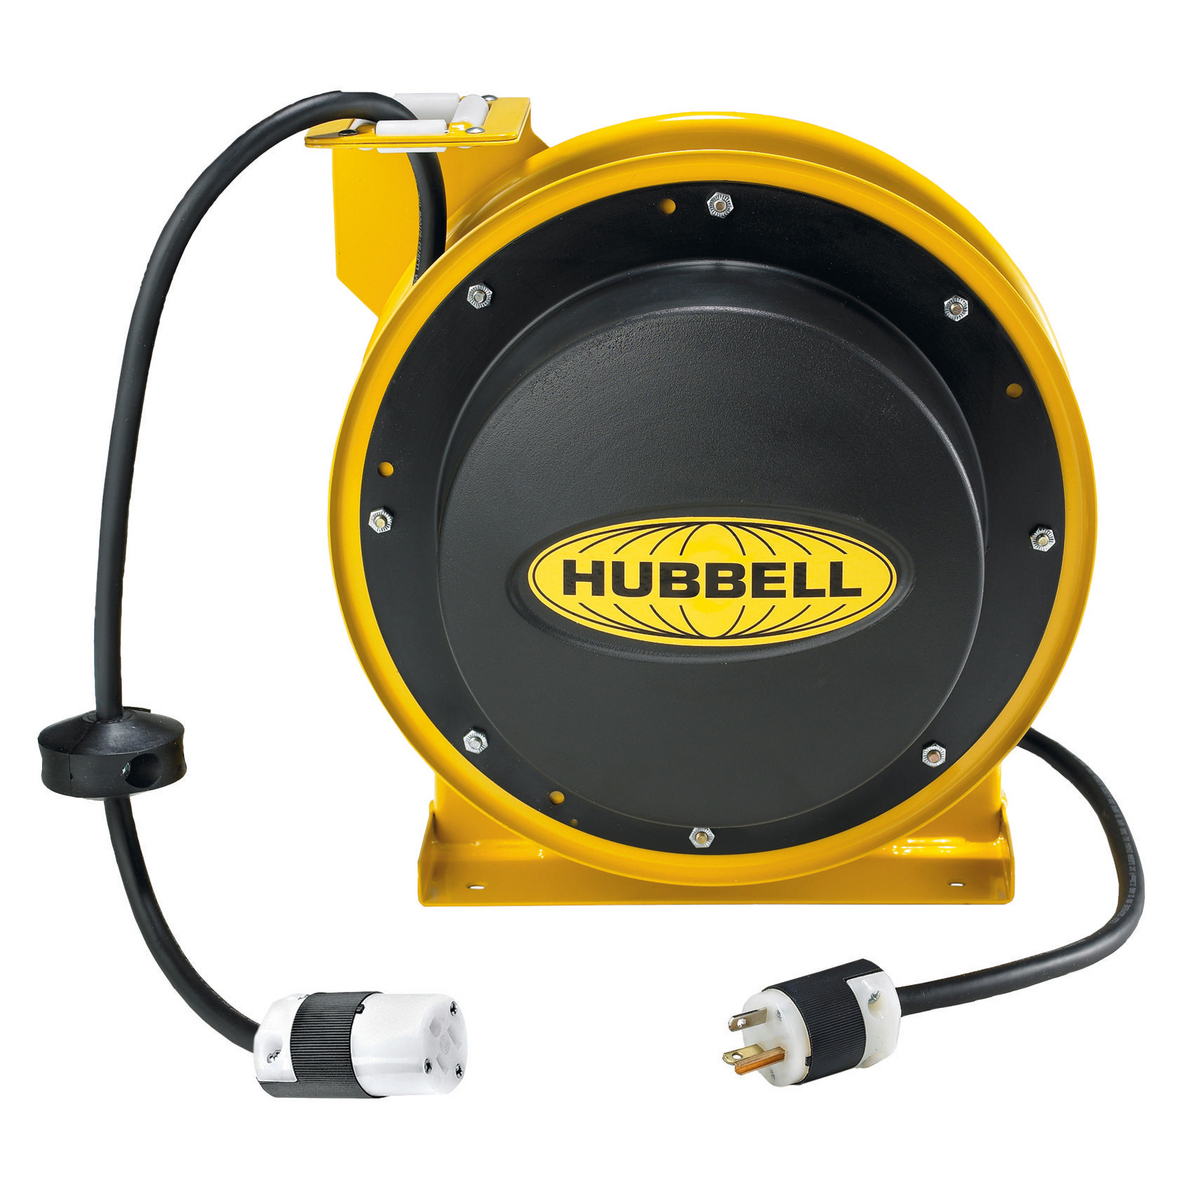 Hubbell HBL45123C 45 Foot 15 Amp 125 VAC NEMA 5-15R Industrial Power Cord Reel